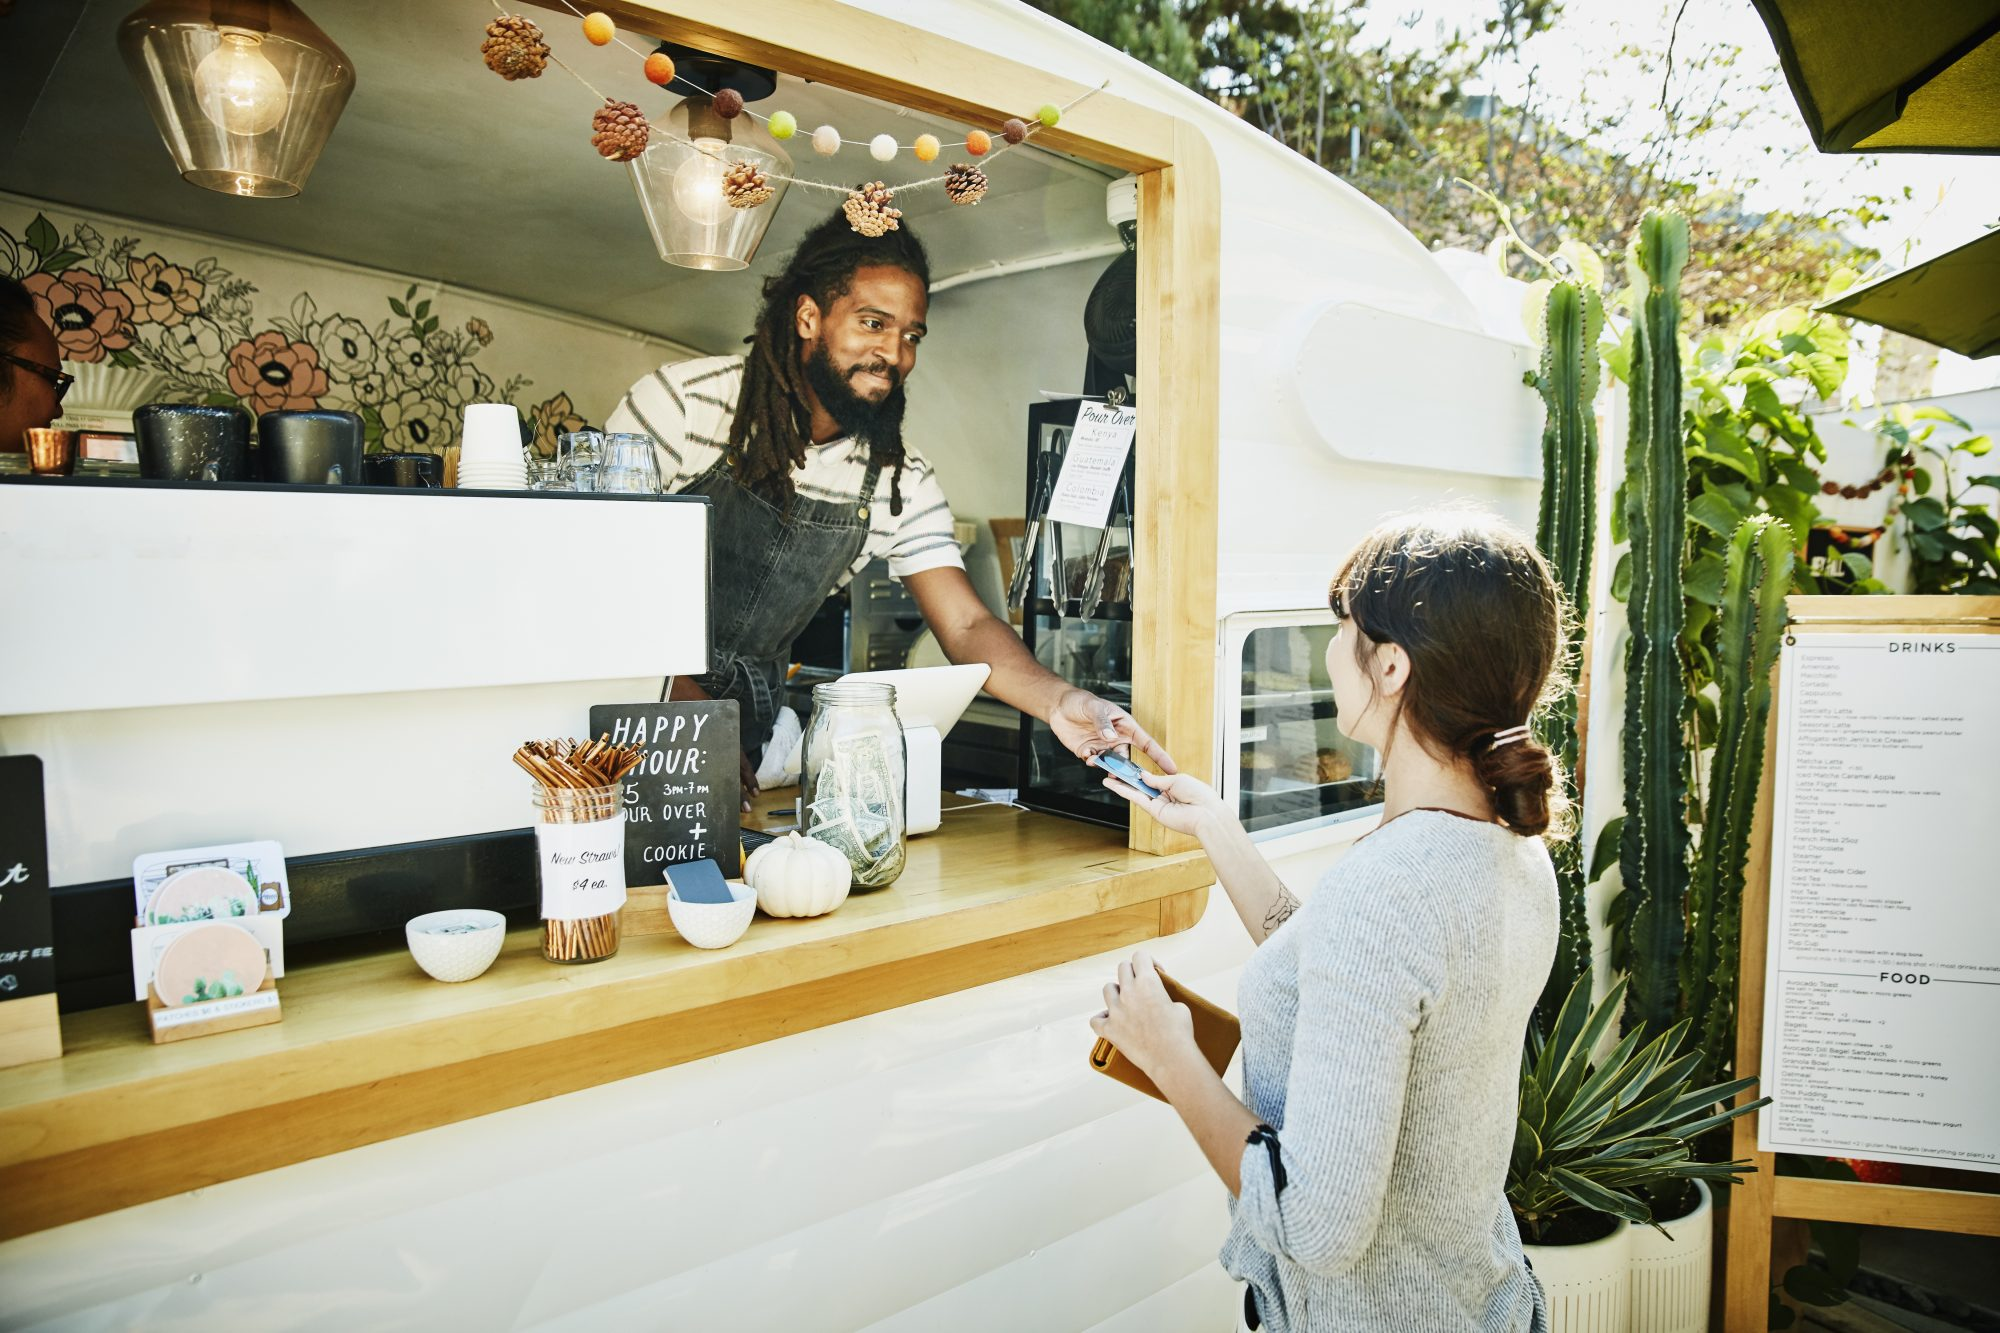 smiling food truck owner taking credit card for payment from customer